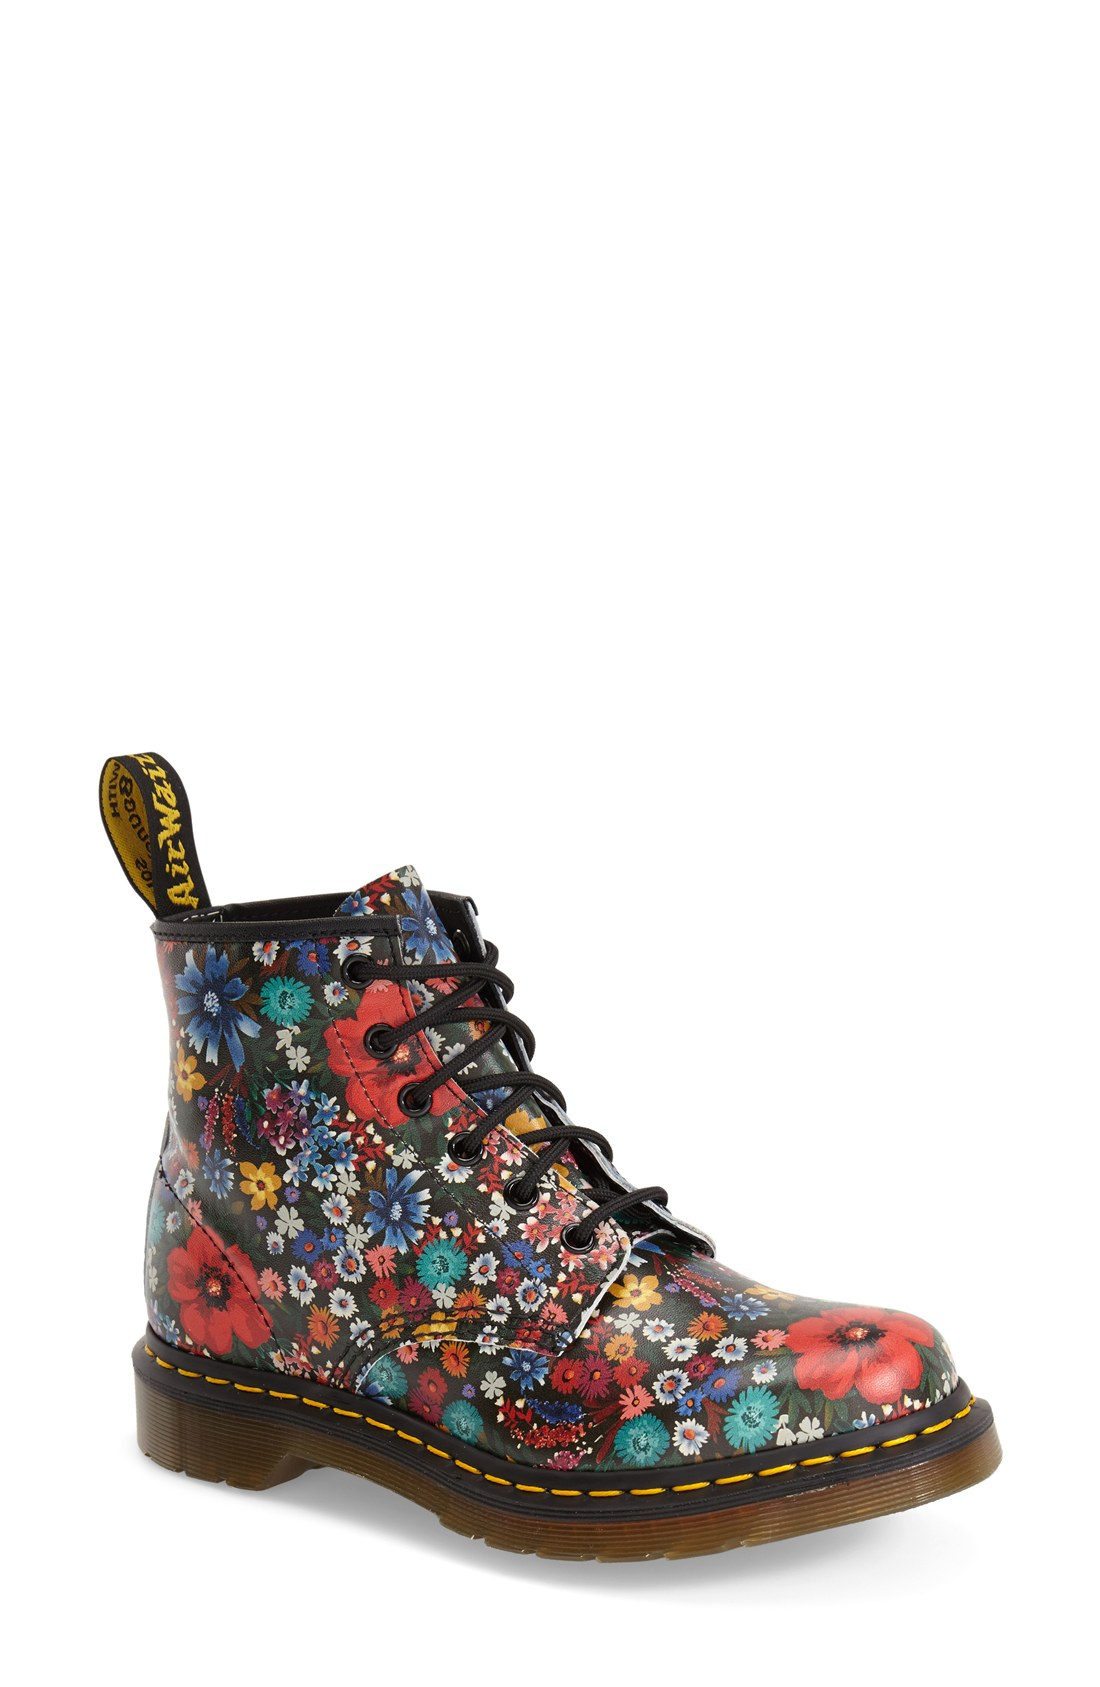 Dr. Martens  101  Floral Print Leather Boot (Women)  253278dd83